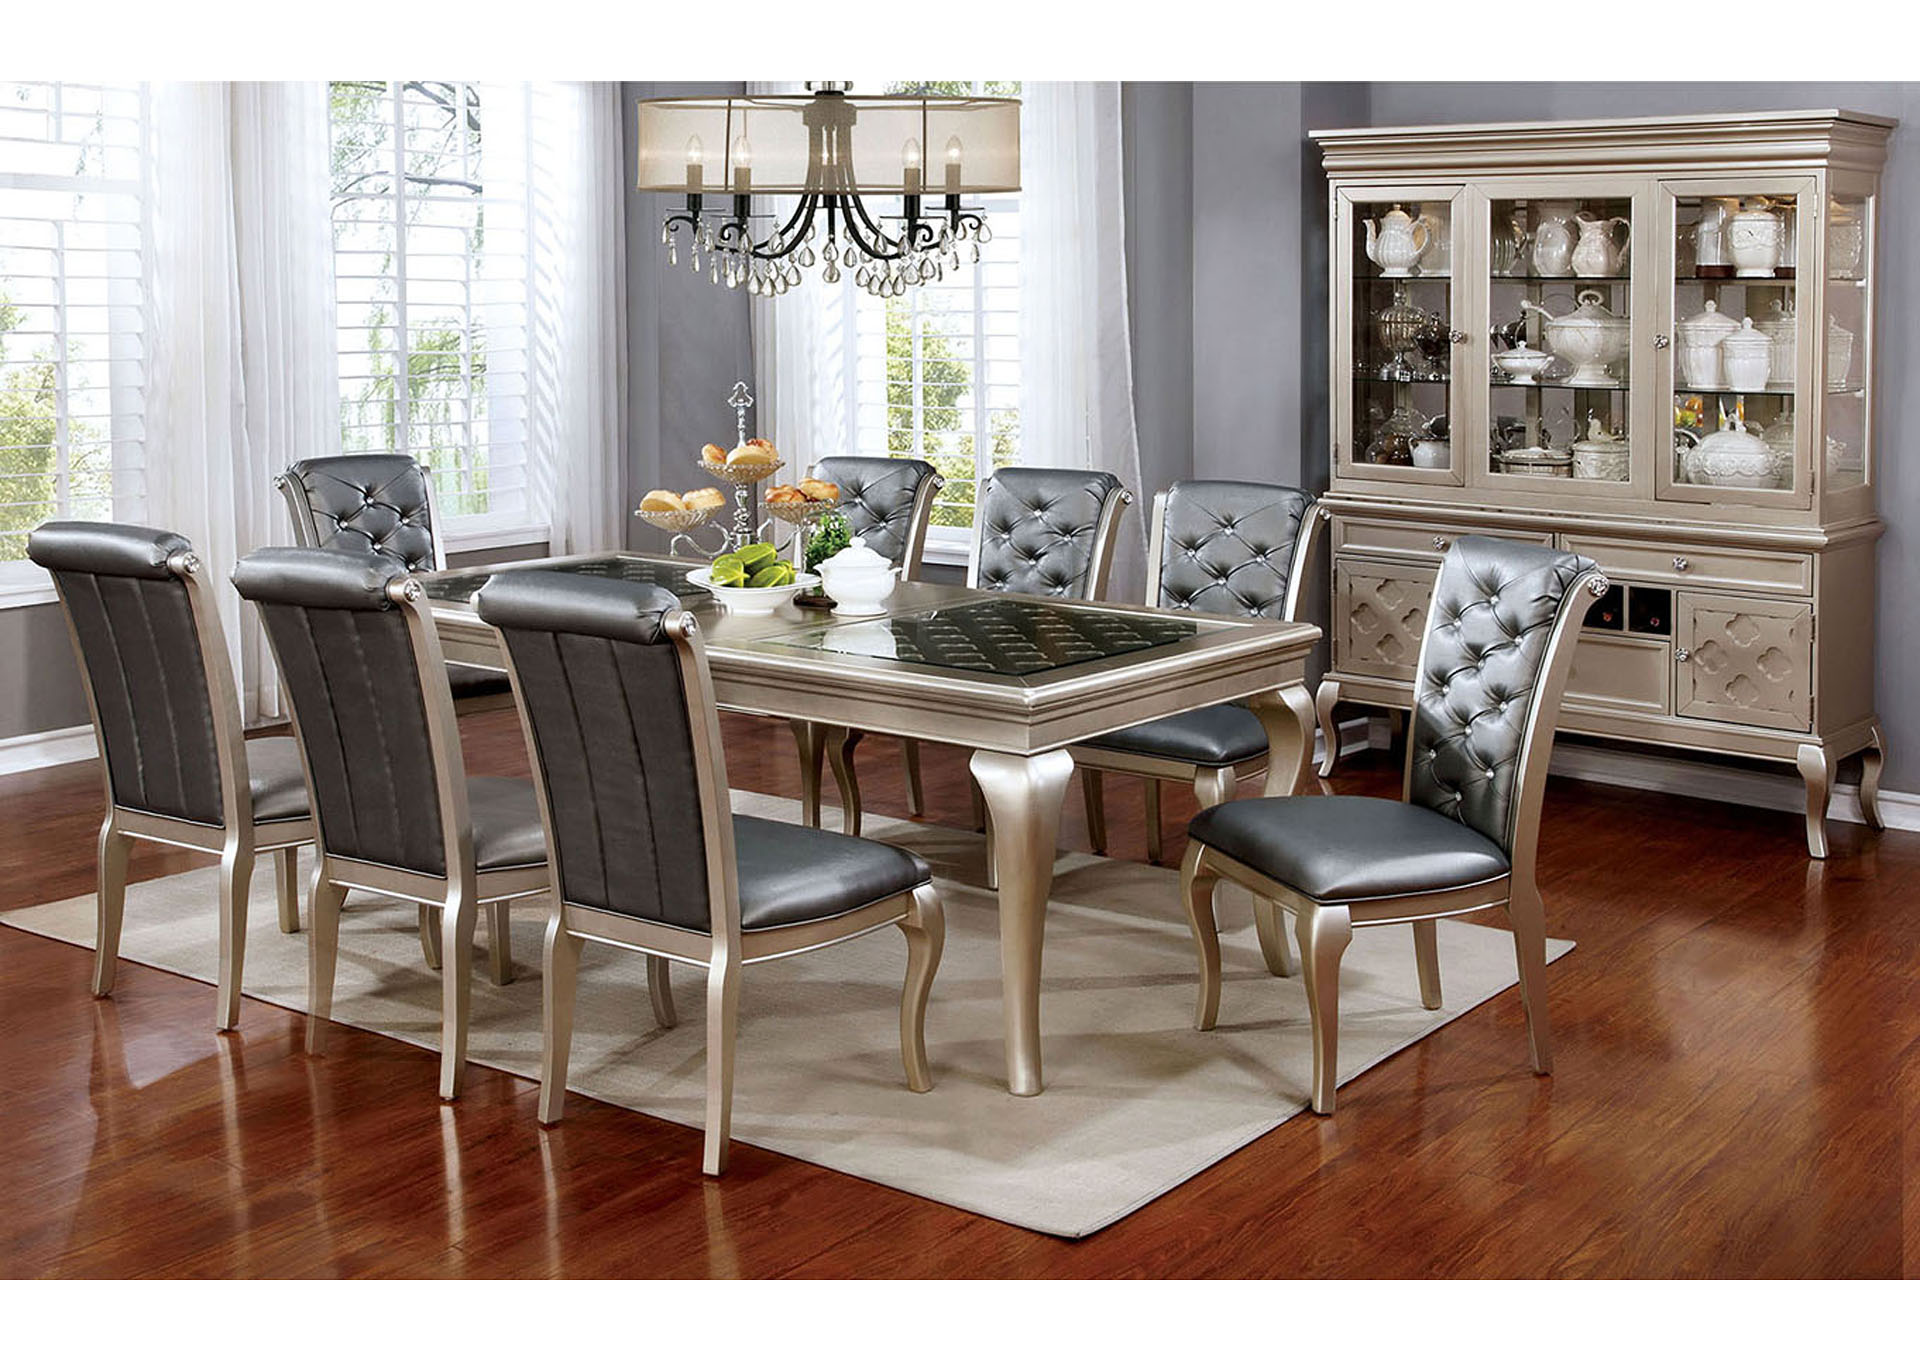 Amina Silver Dining Table W/Glass Inserts,Furniture Of America